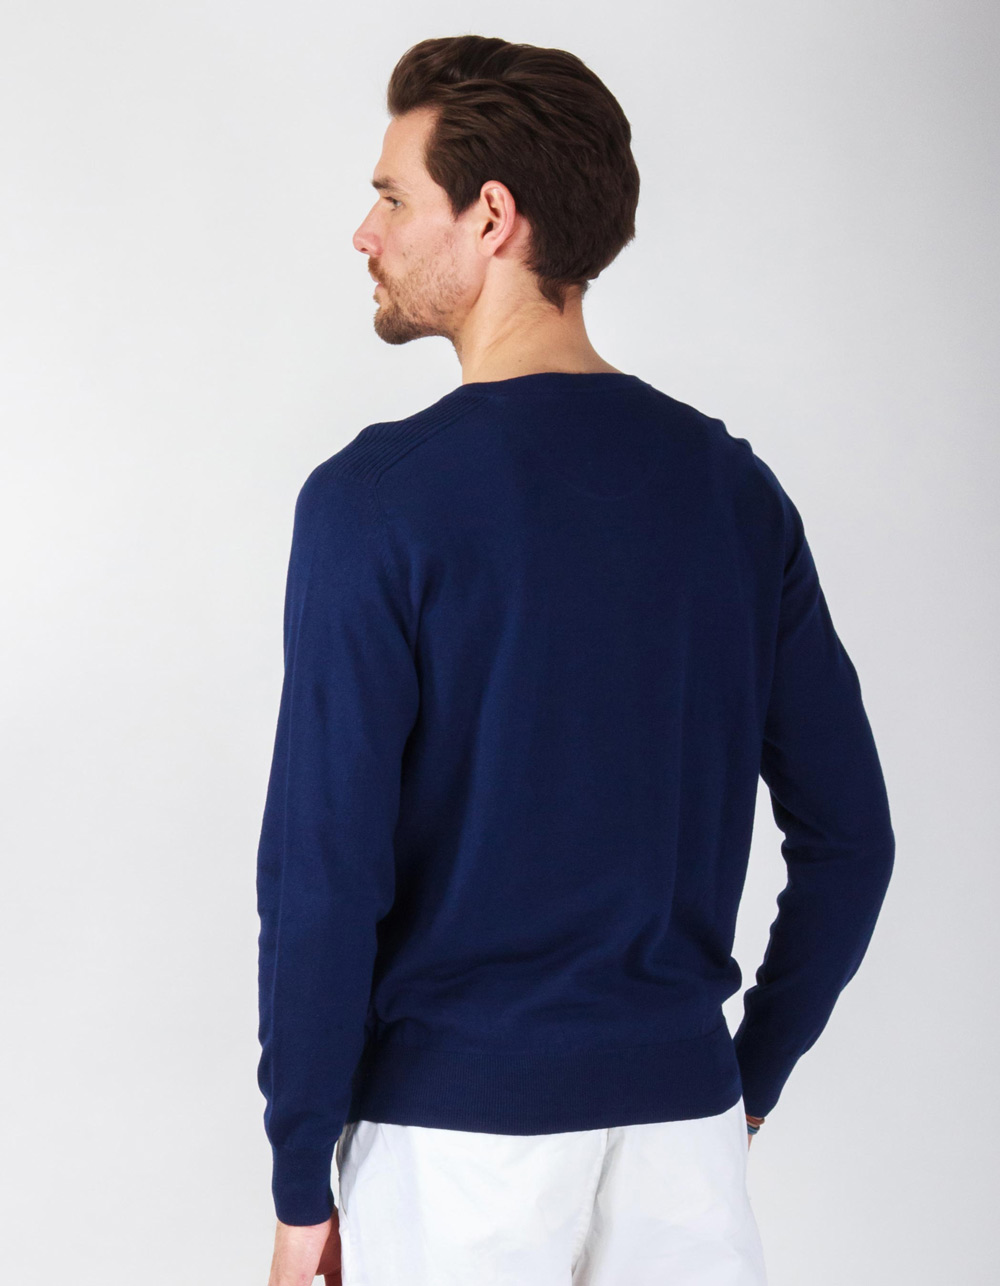 Jersey cuello pico en azul marino - Backside